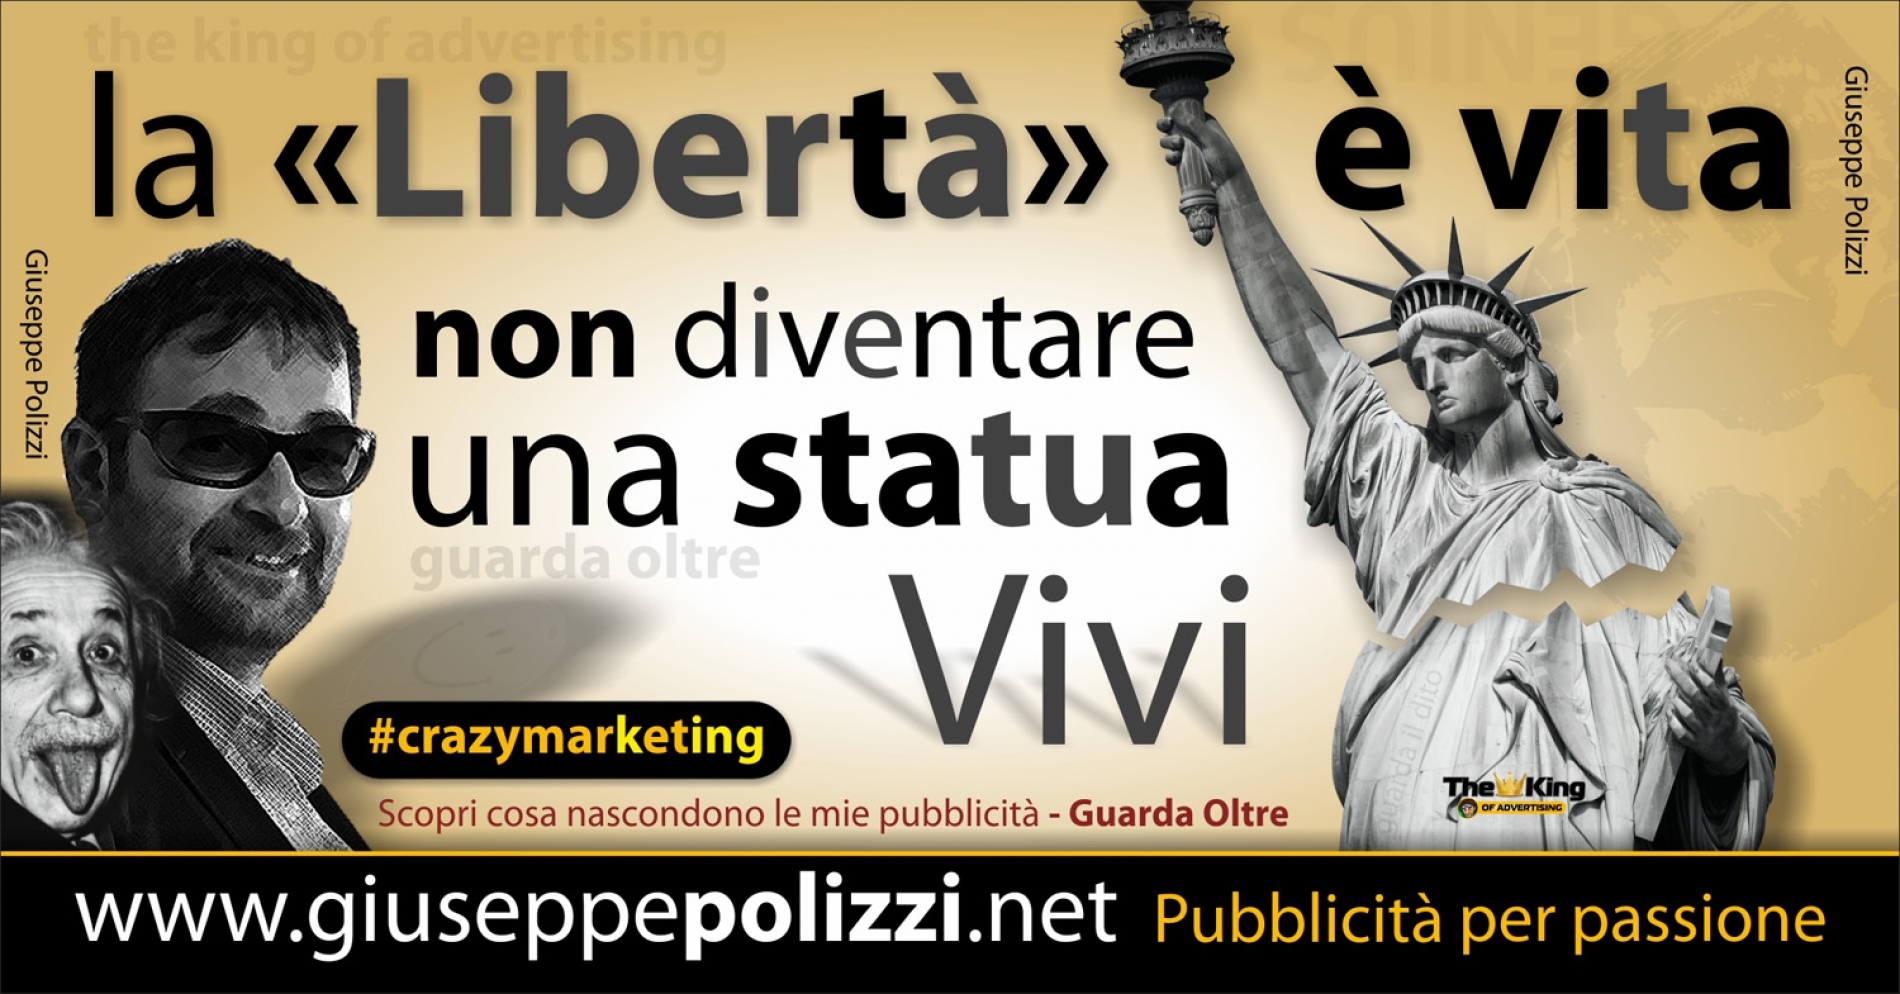 giuseppe polizzi crazy marketing pubblicità 2016 crazy marketing statua liberta